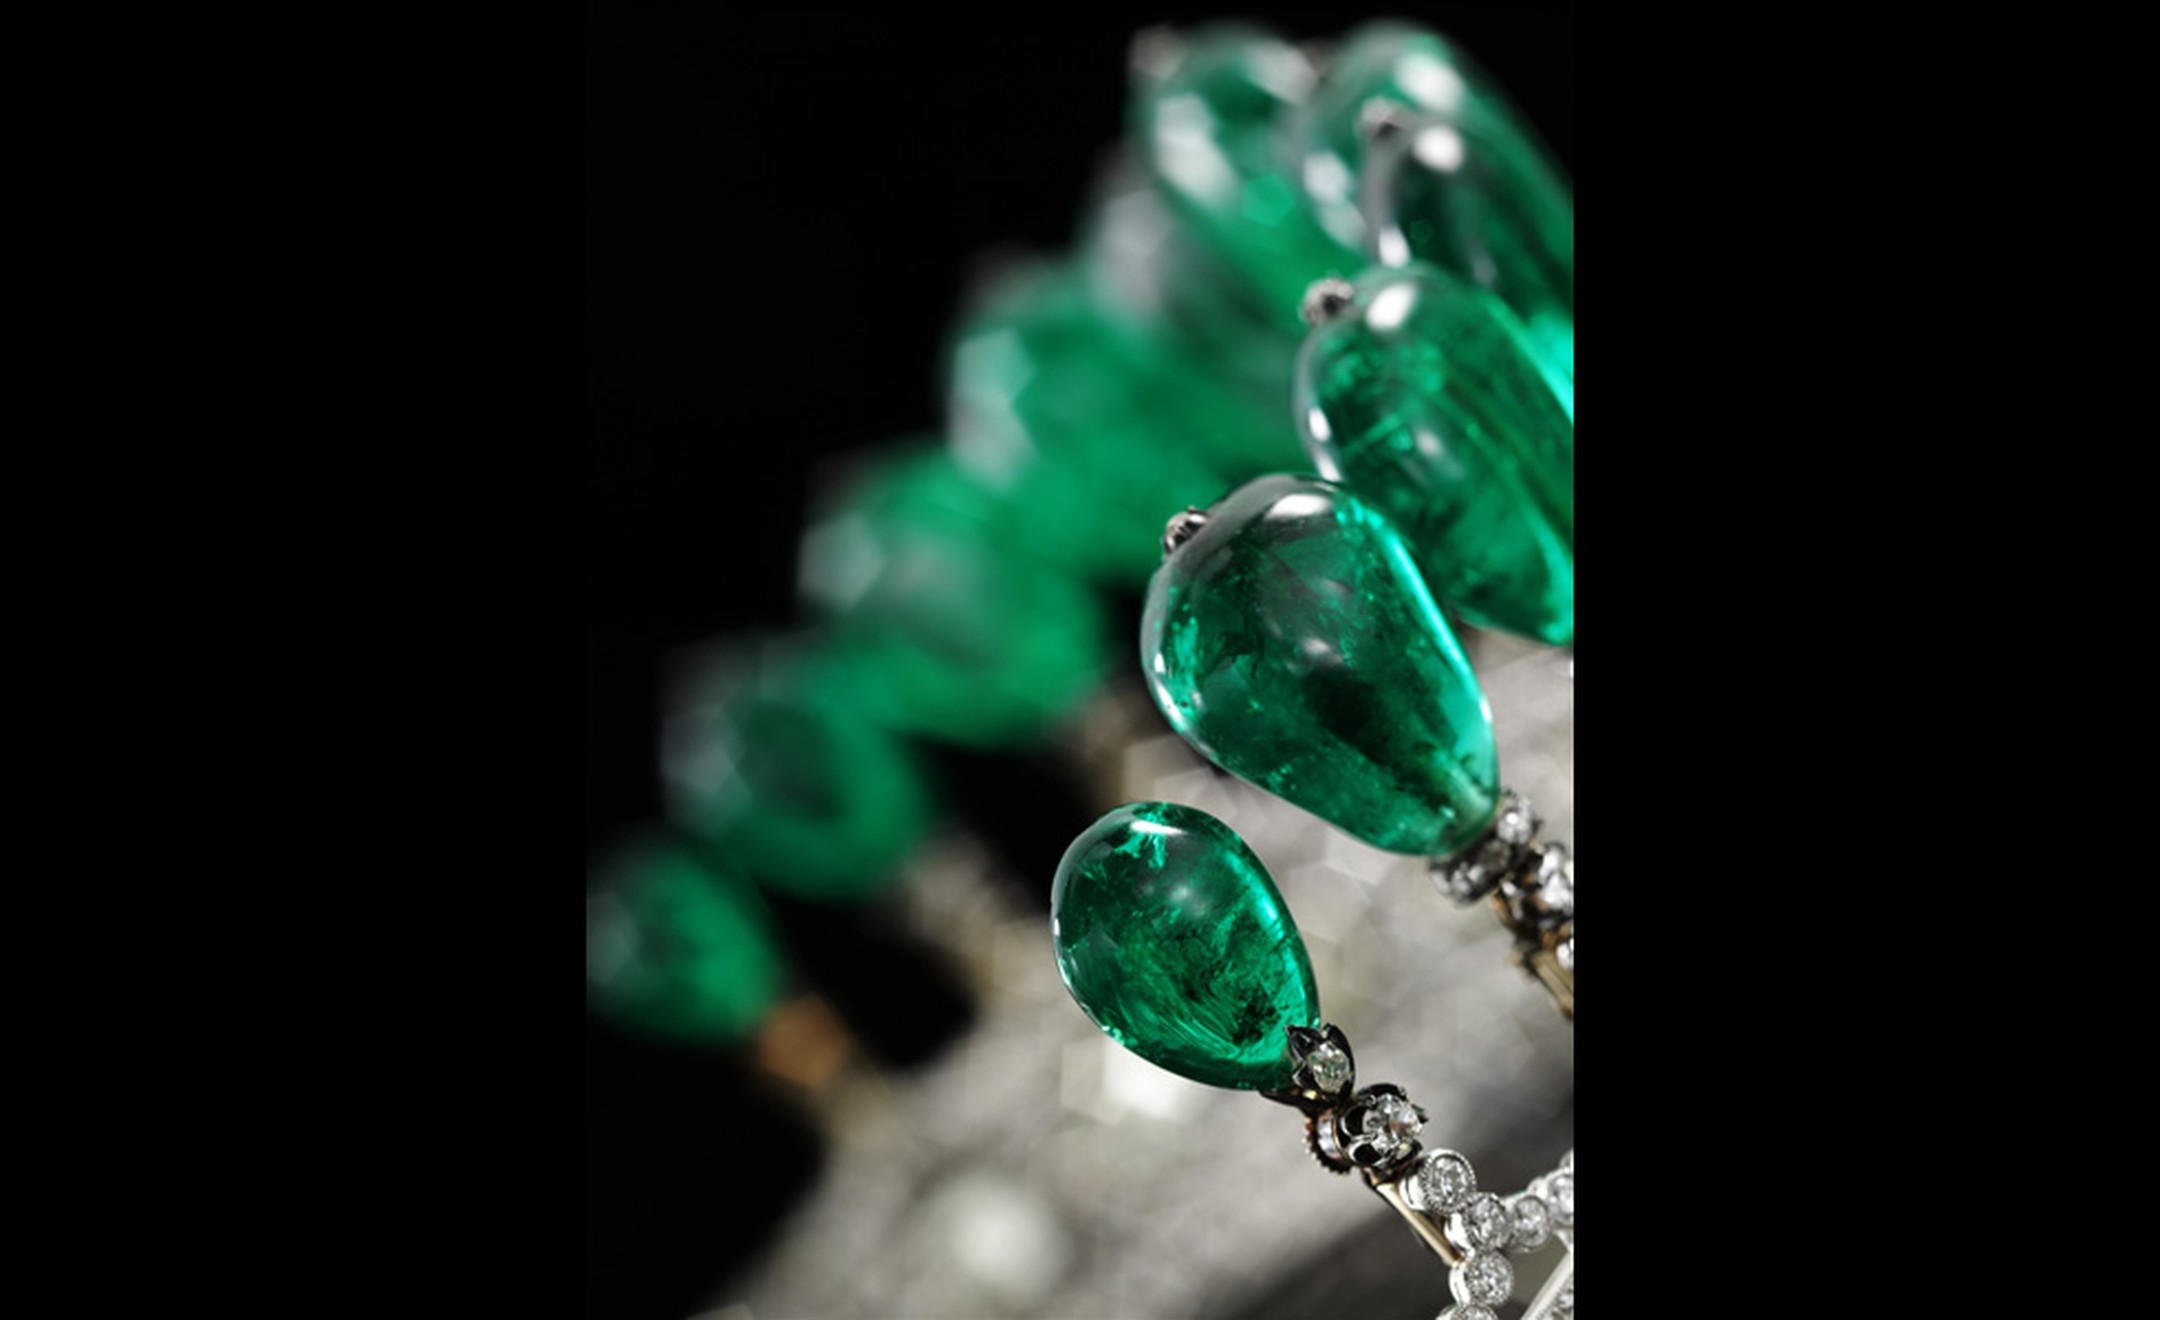 Close up of emerald tiara circa 1900 to be auctioned by Sotheby's in Geneva on 17 May with 11 rare Columbian emerald drops that may have been part of the French Imperial Crown jewels.